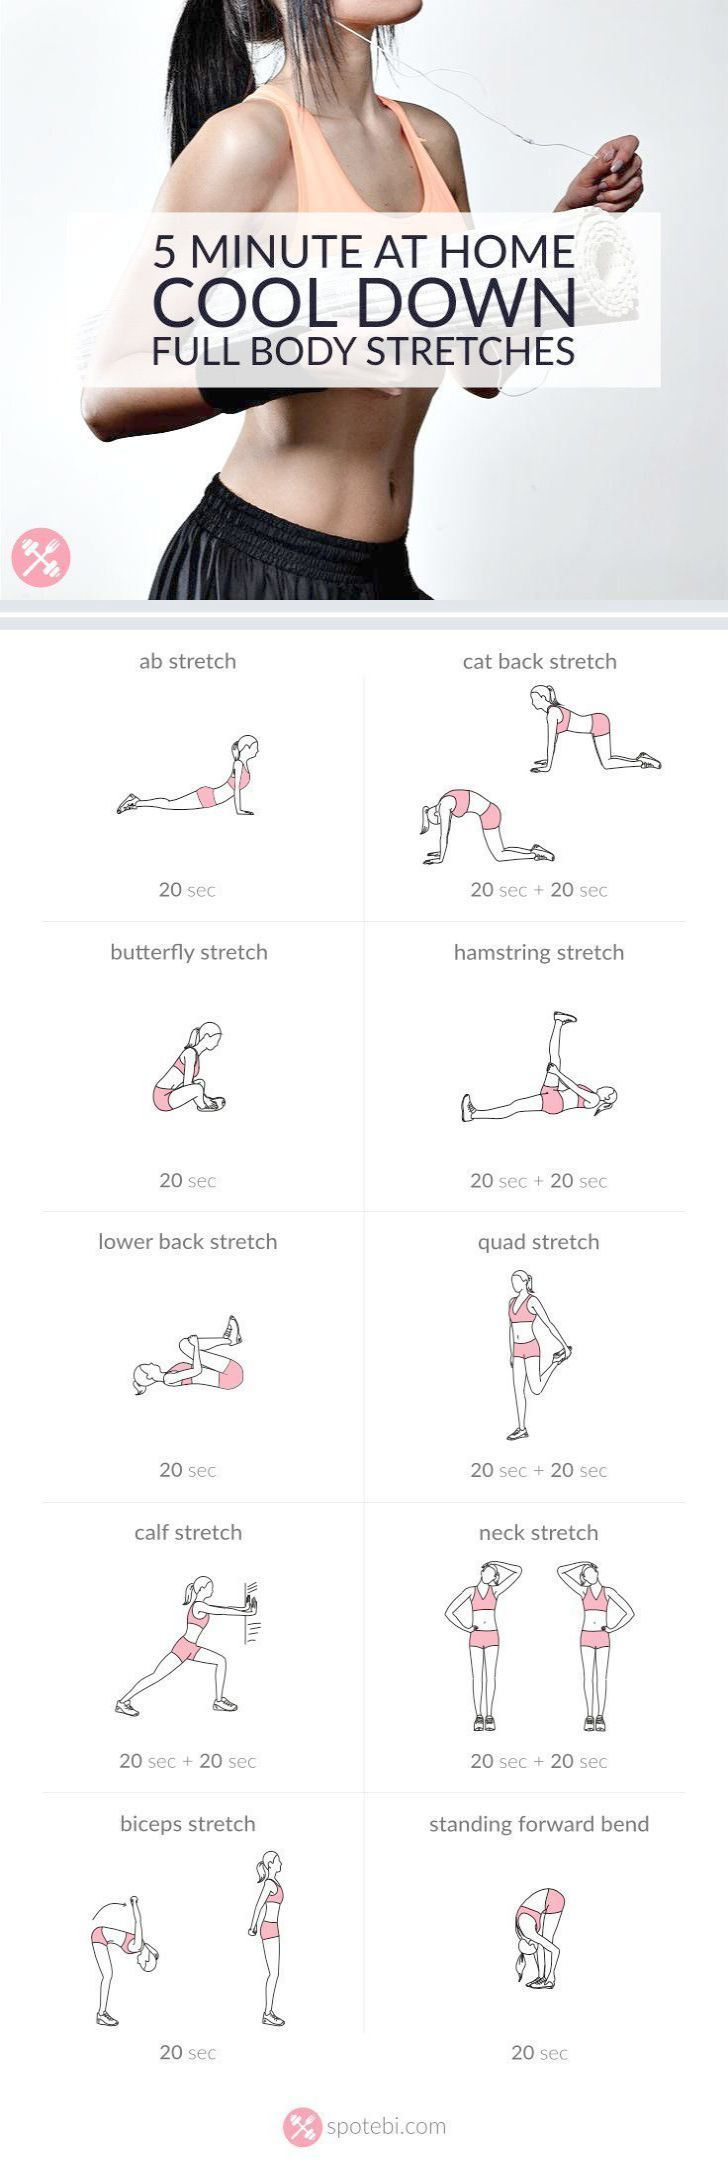 Ab Swing Workout Machine my Lower Ab Exercises Bodybuilding Forum - Killer Ab Exercises At Home below Ab Exercises In The Pool time Ab Exercises For Desk #abexercisemachine